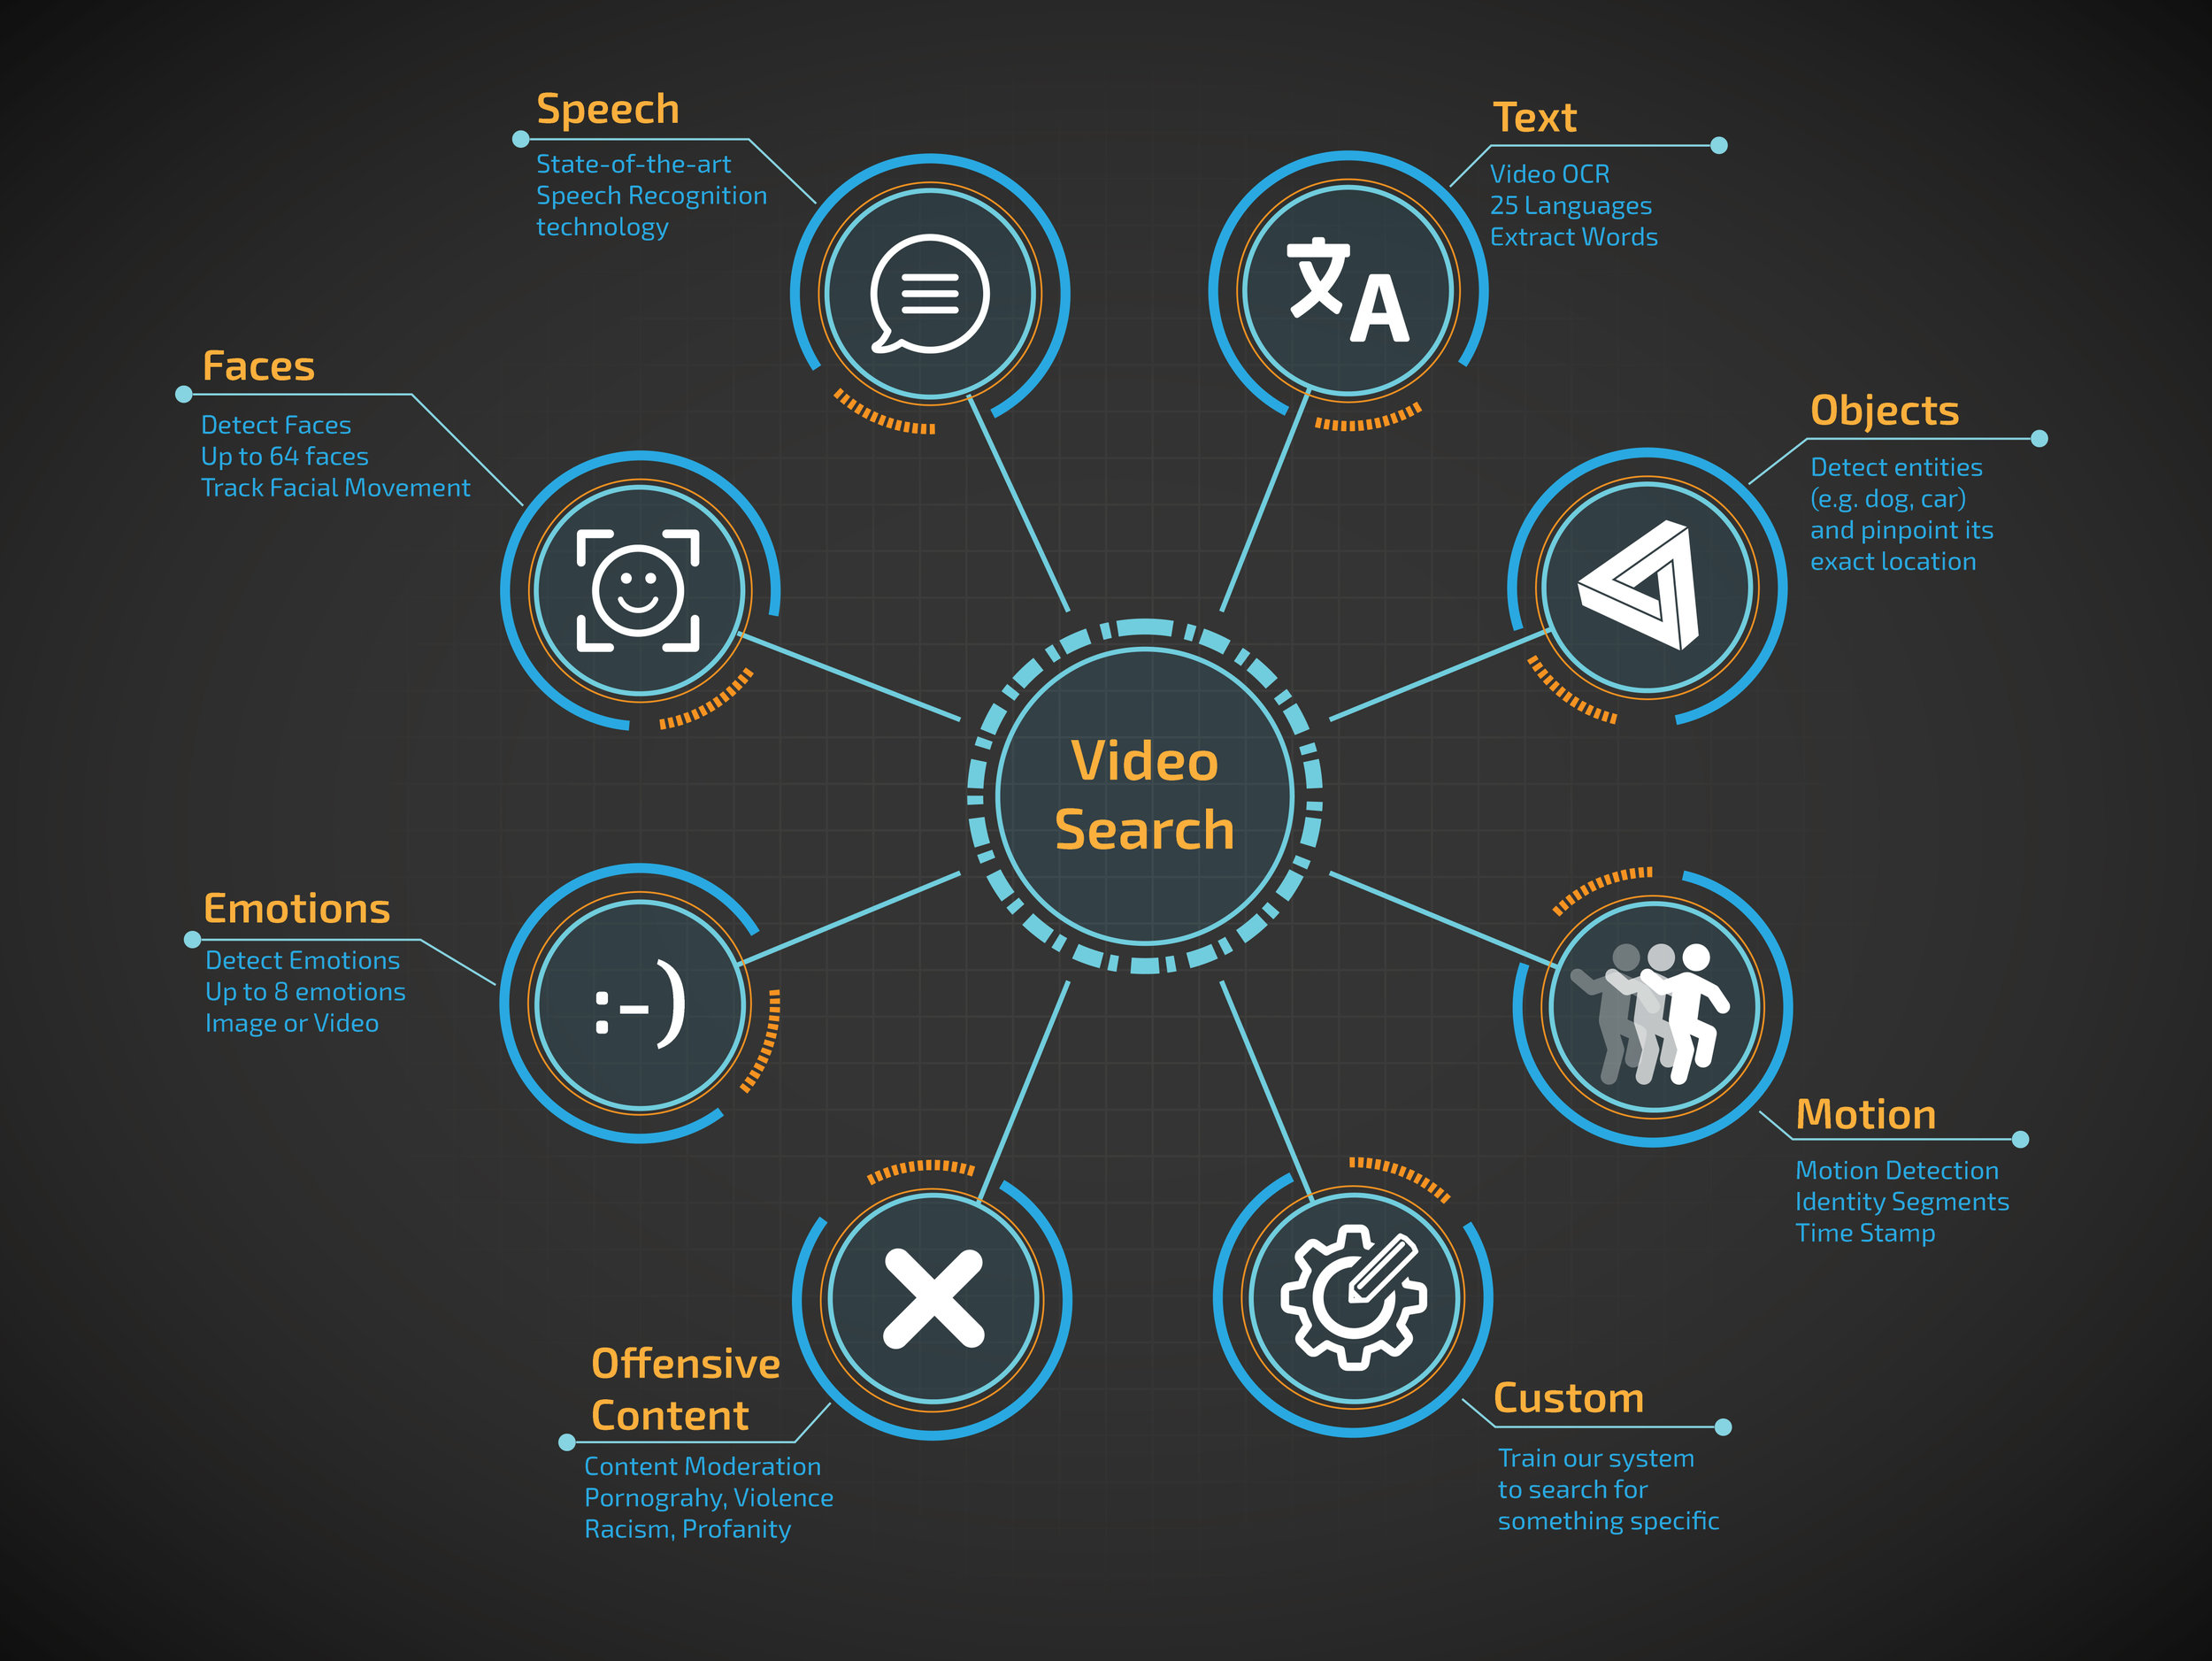 video-search-as-a-service